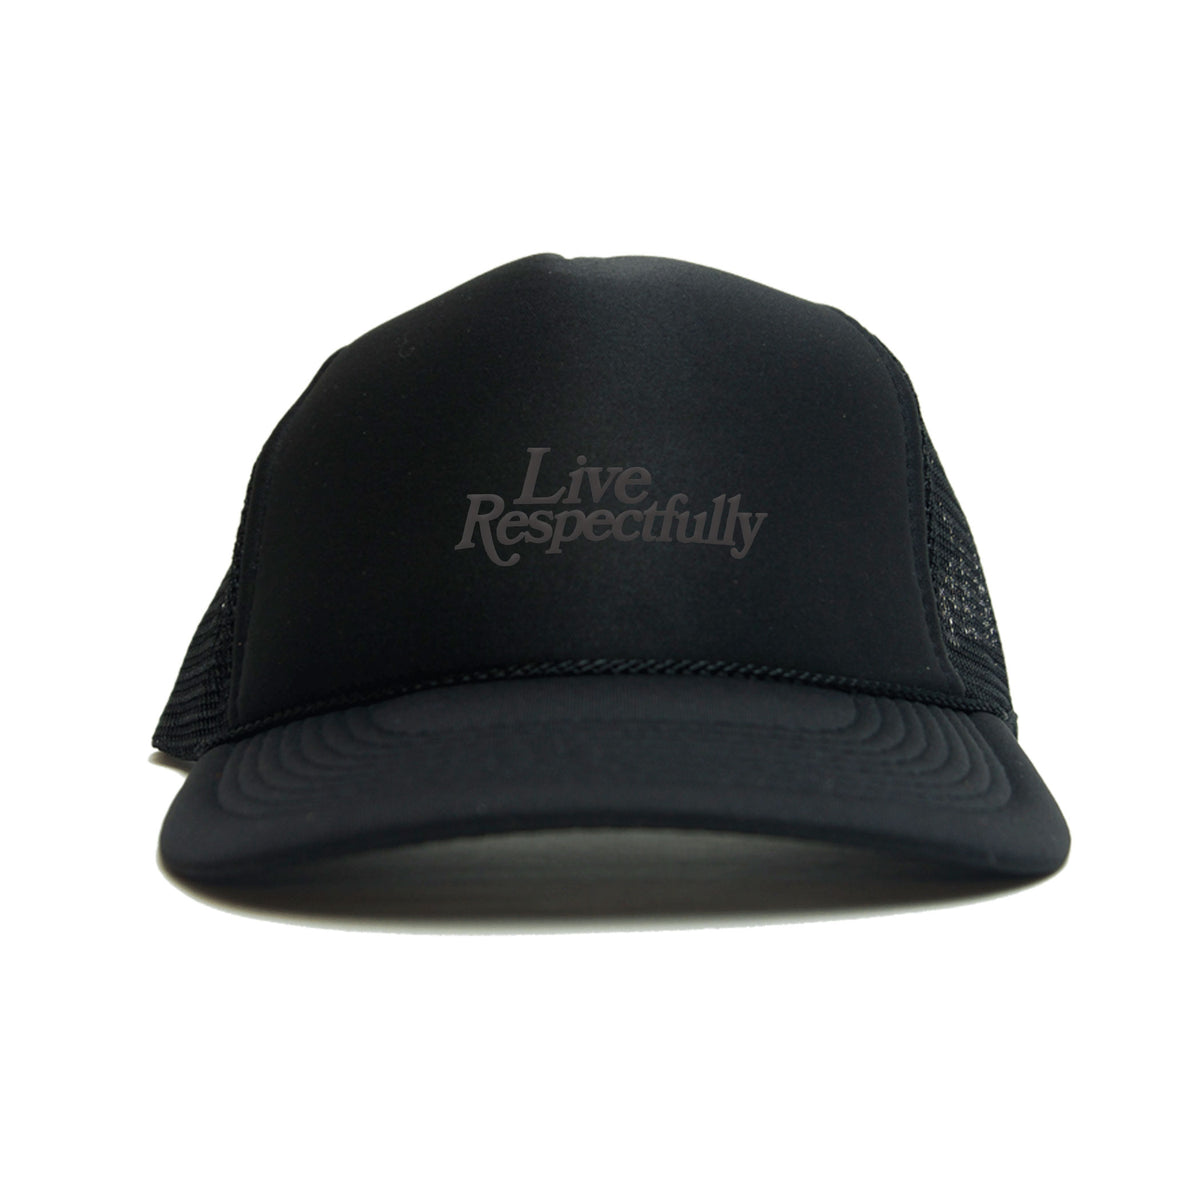 Live Respectfully trucker hat